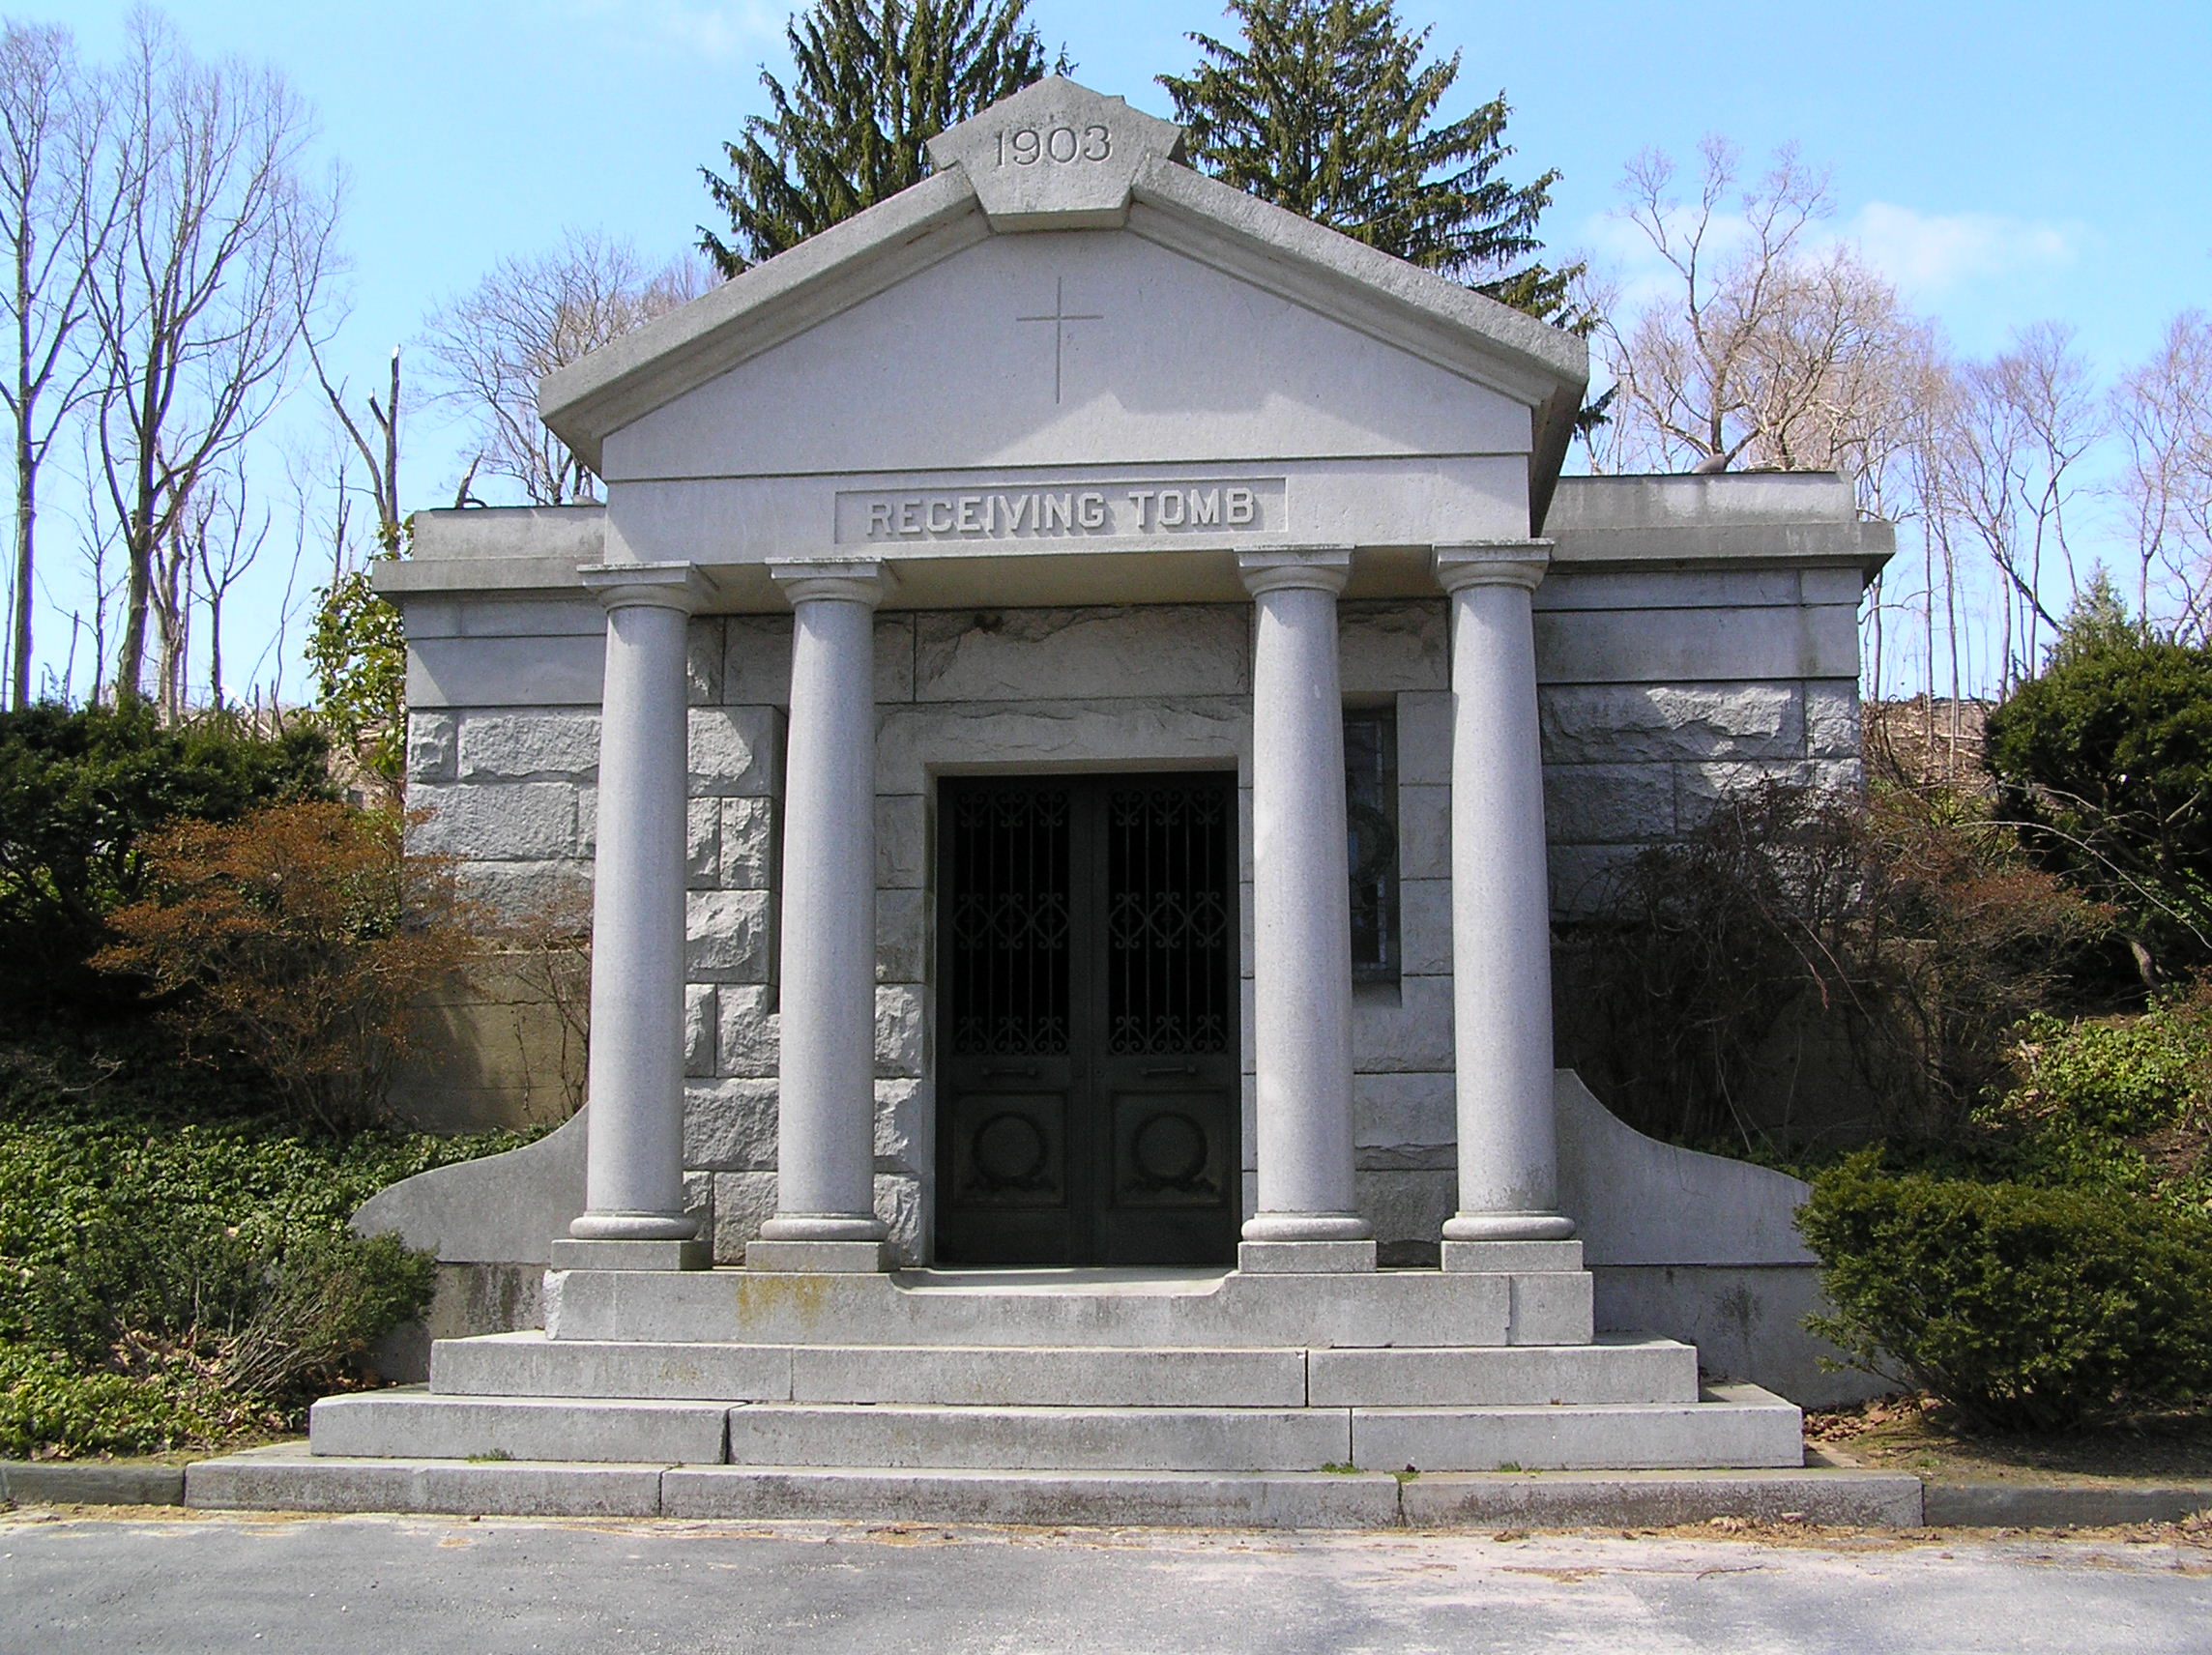 Valhalla ny Cemetery Gate Heaven File Gate of Heaven Cemetery